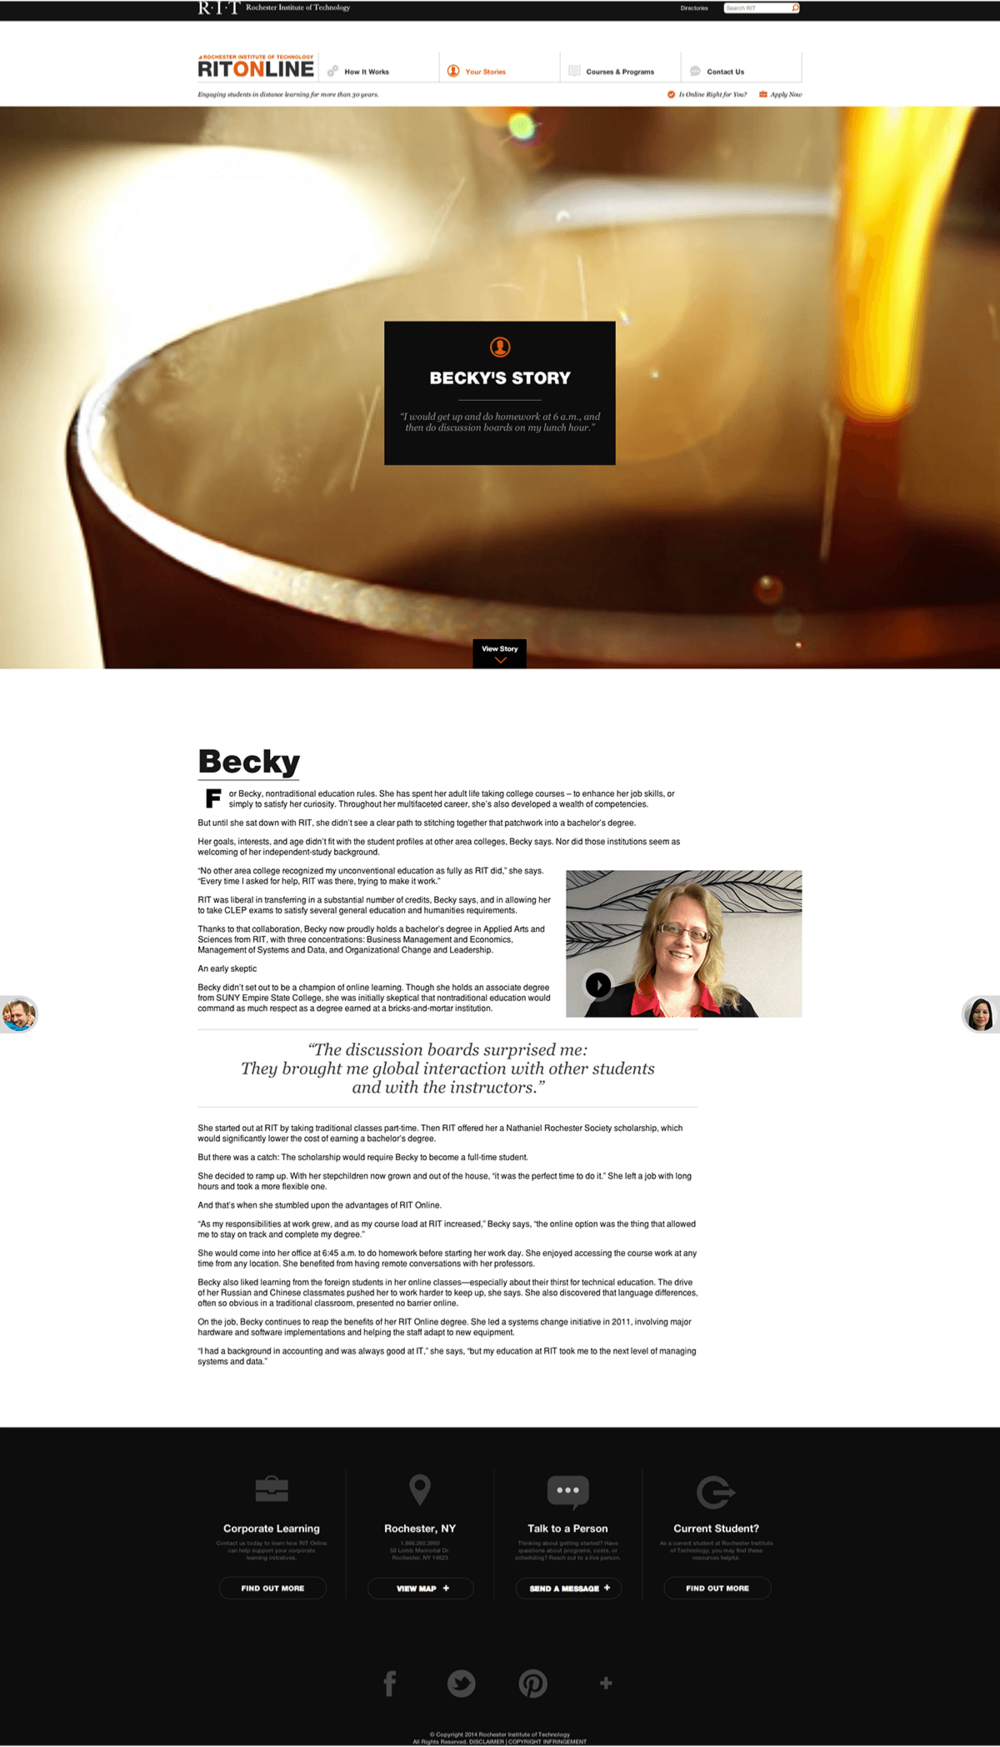 beckys-story-ritonline@2x.png